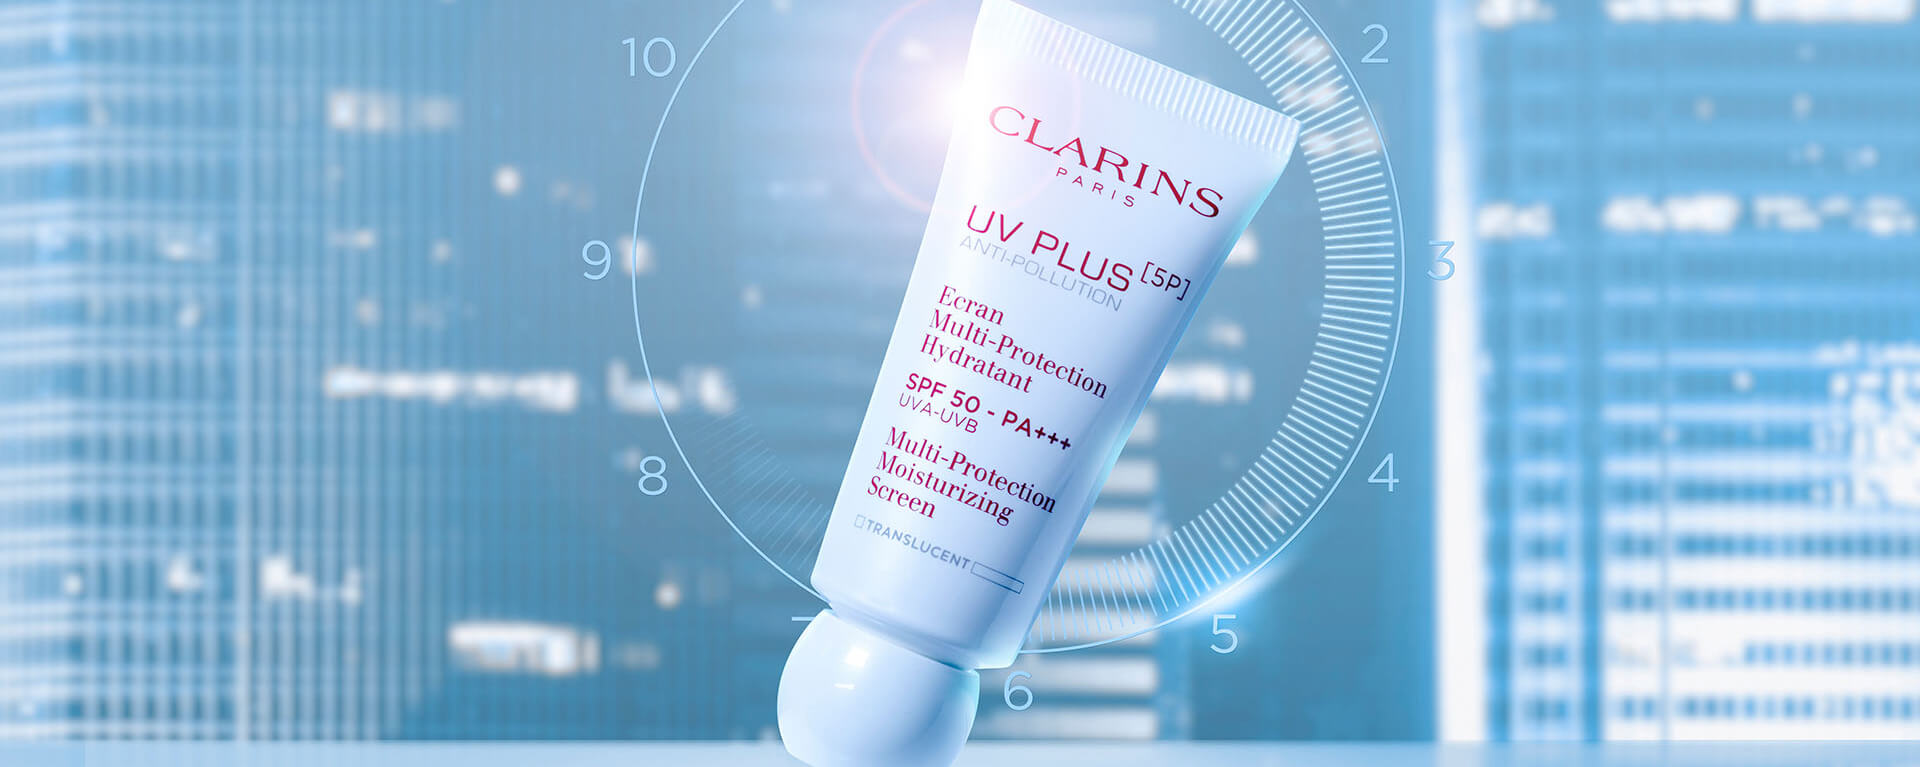 clarins-collection-banner-1